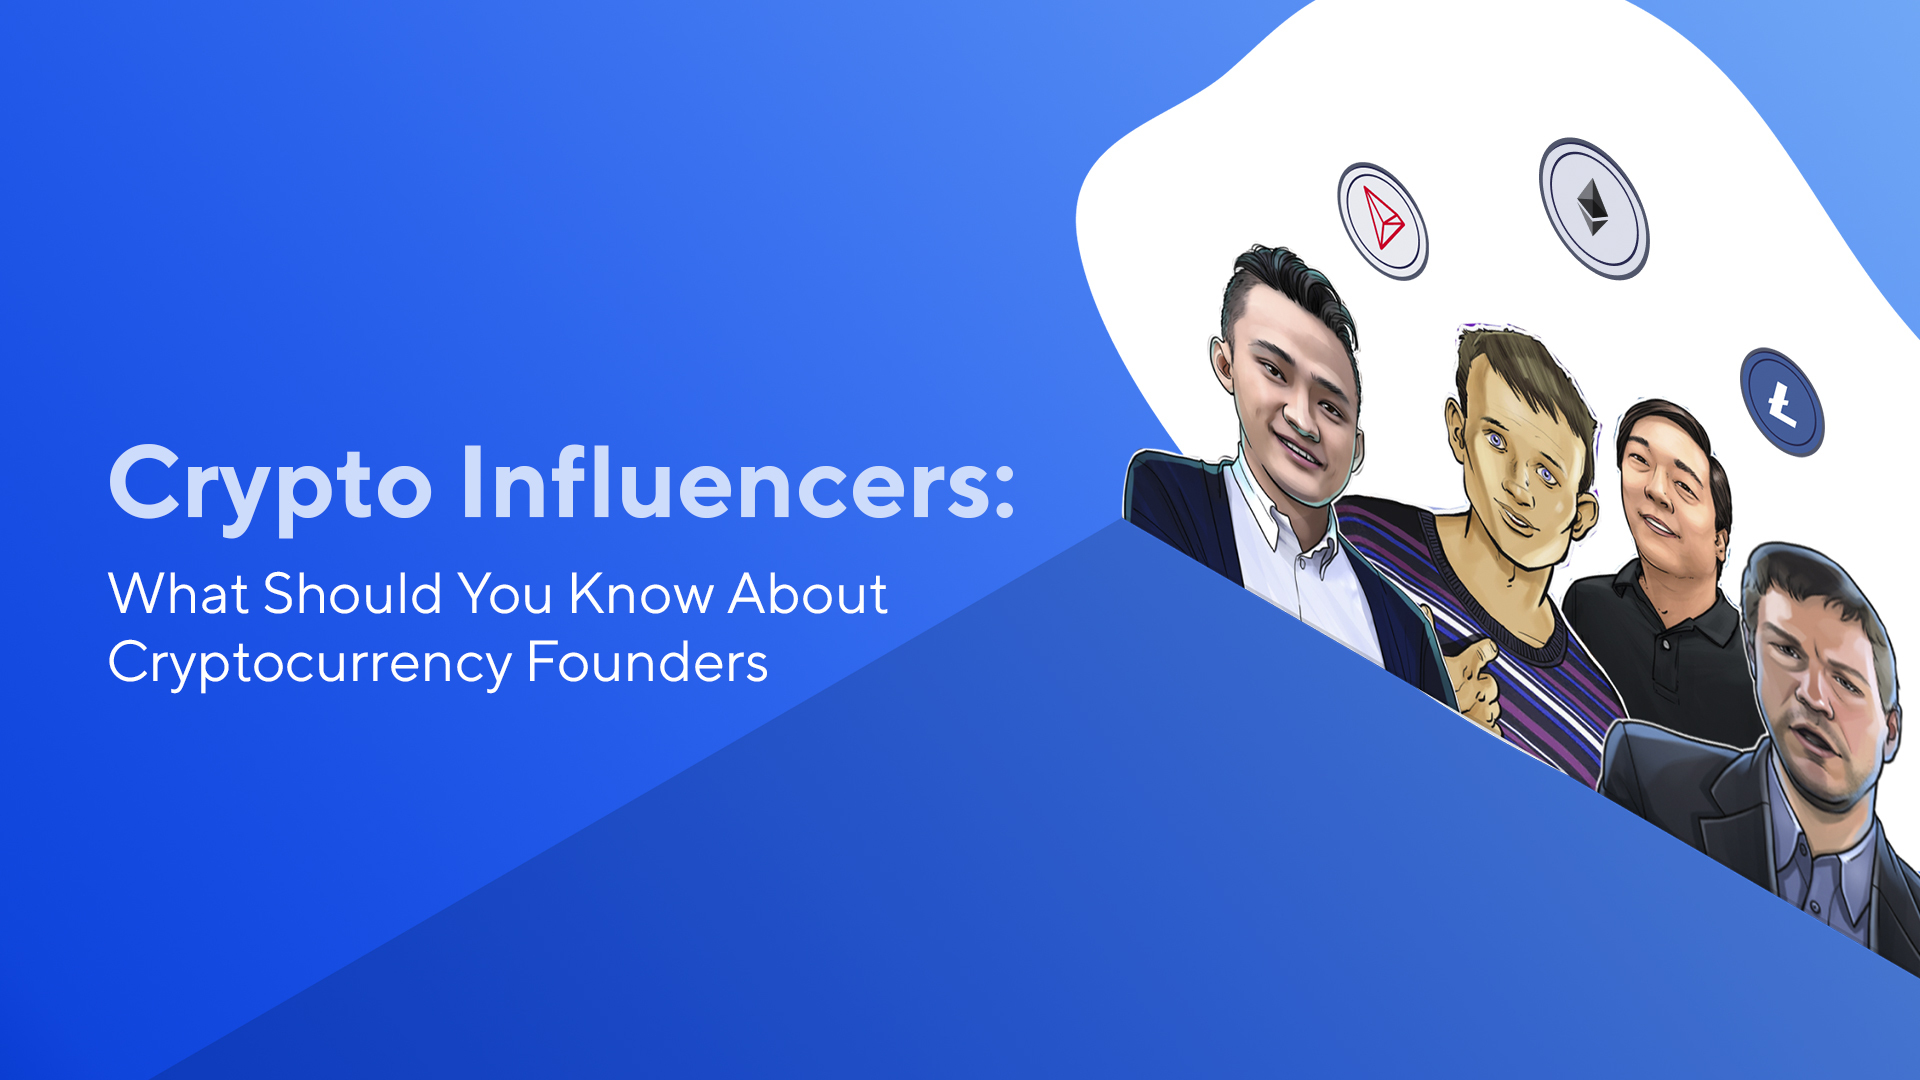 Crypto Influencers: What Should You Know About Cryptocurrency Founders